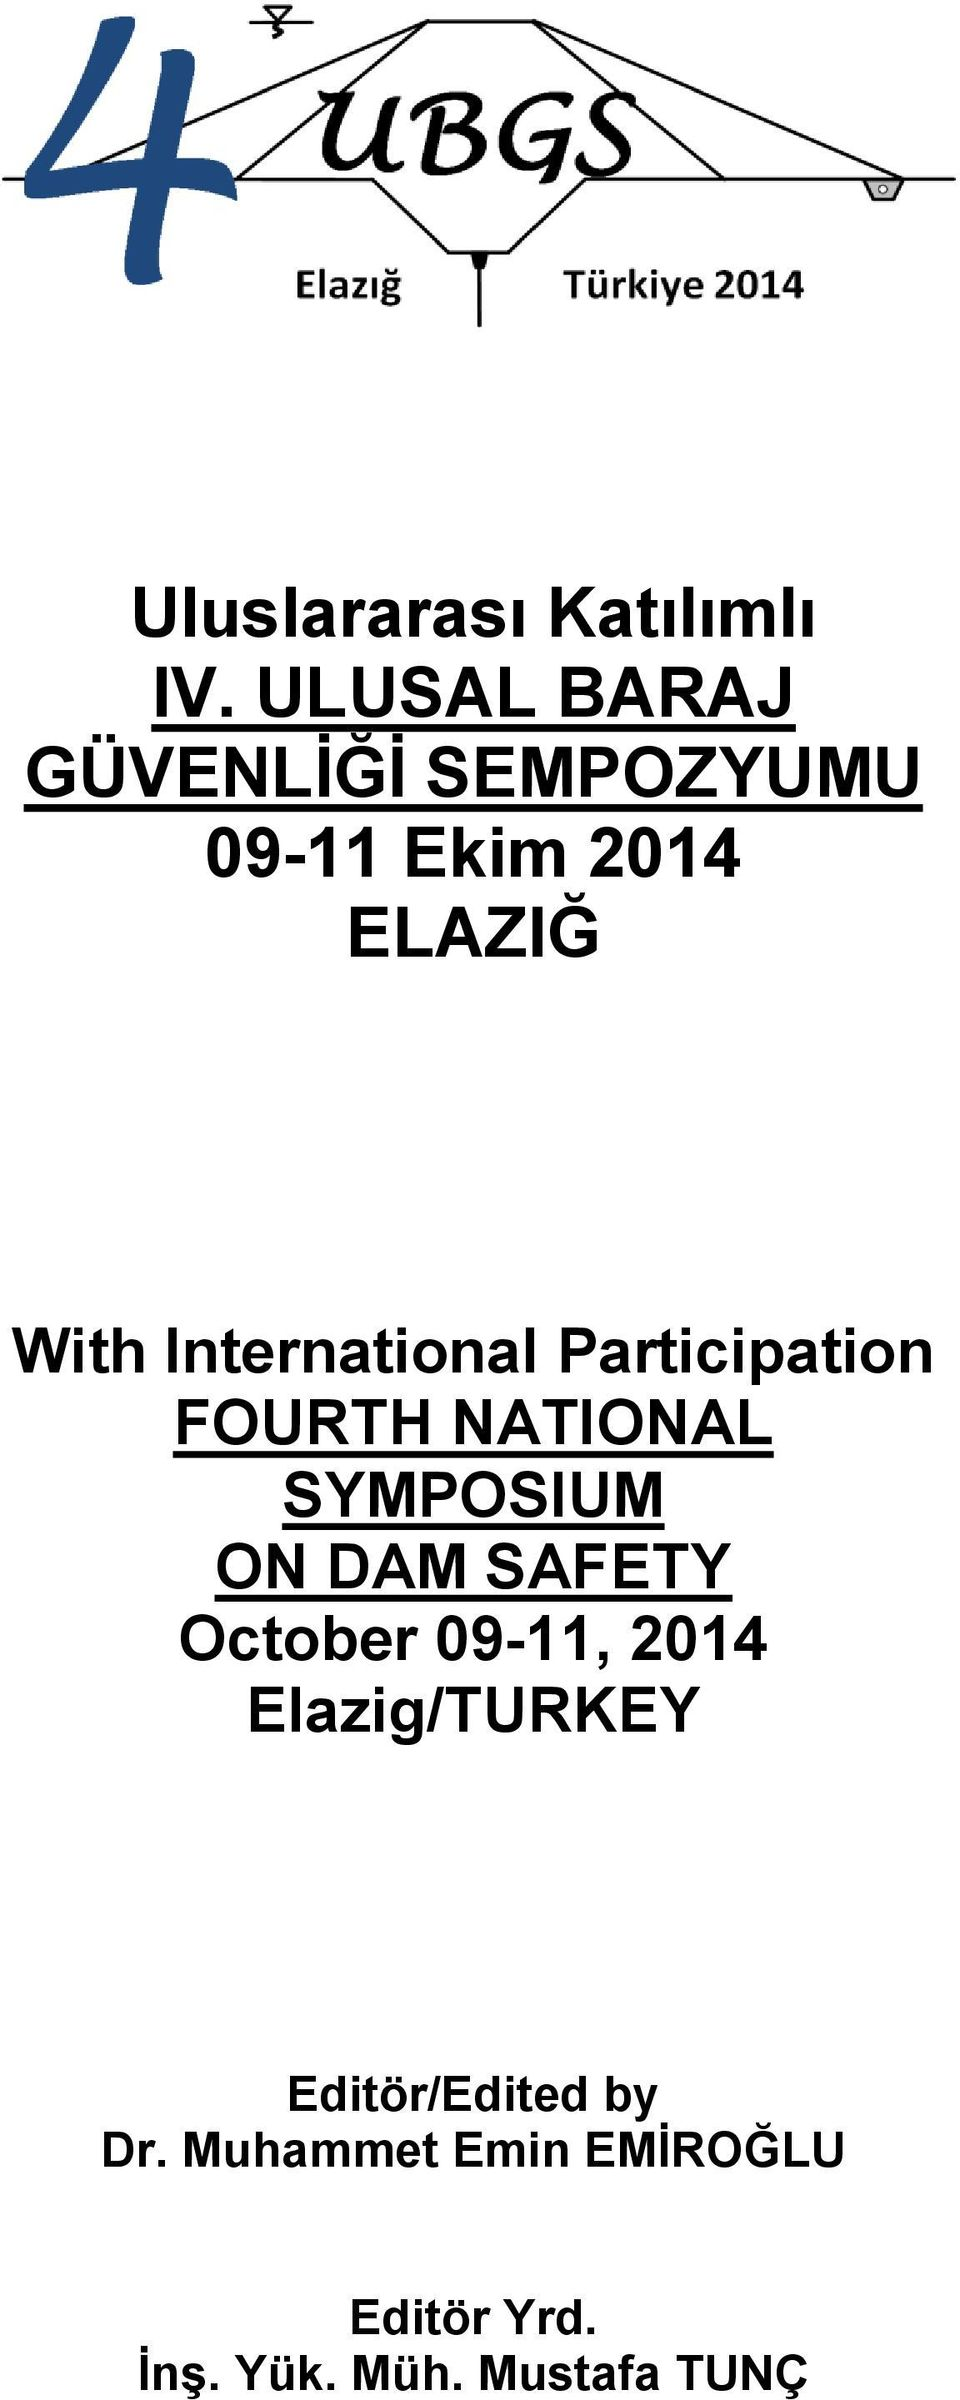 International Participation FOURTH NATIONAL SYMPOSIUM ON DAM SAFETY